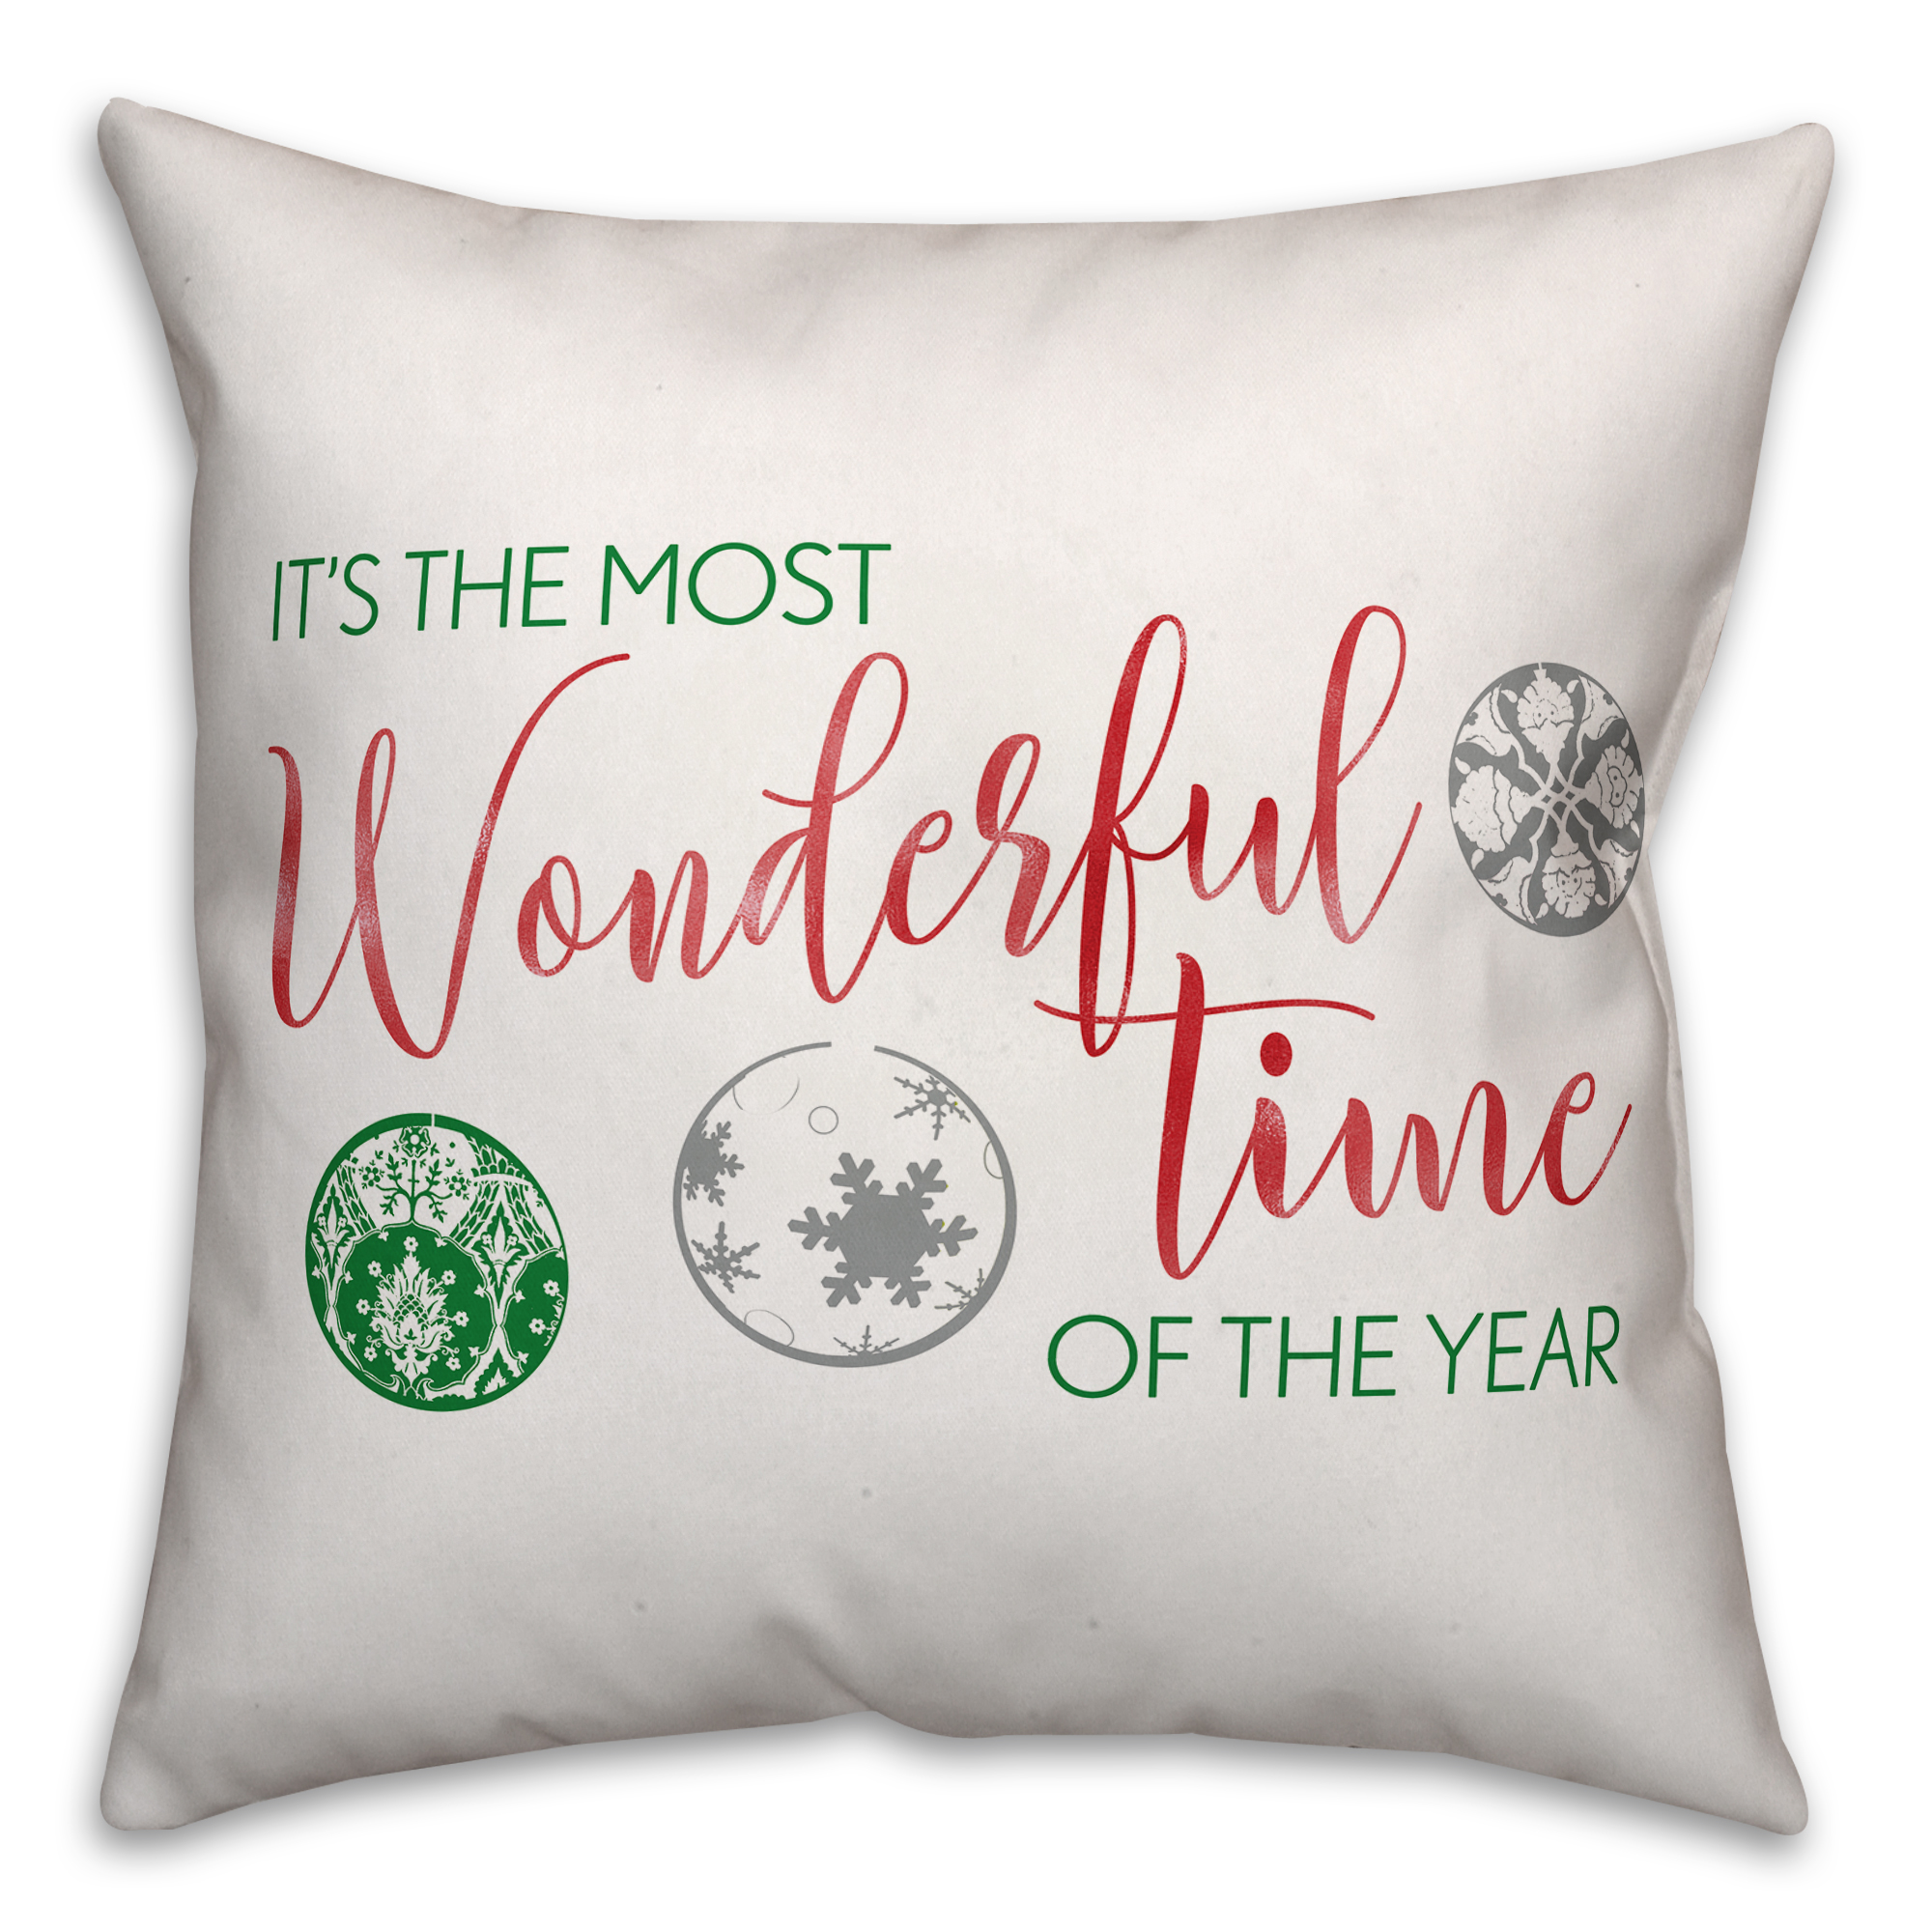 It's the Most Wonderful Time of the Year 20x20 Spun Poly Pillow Cover